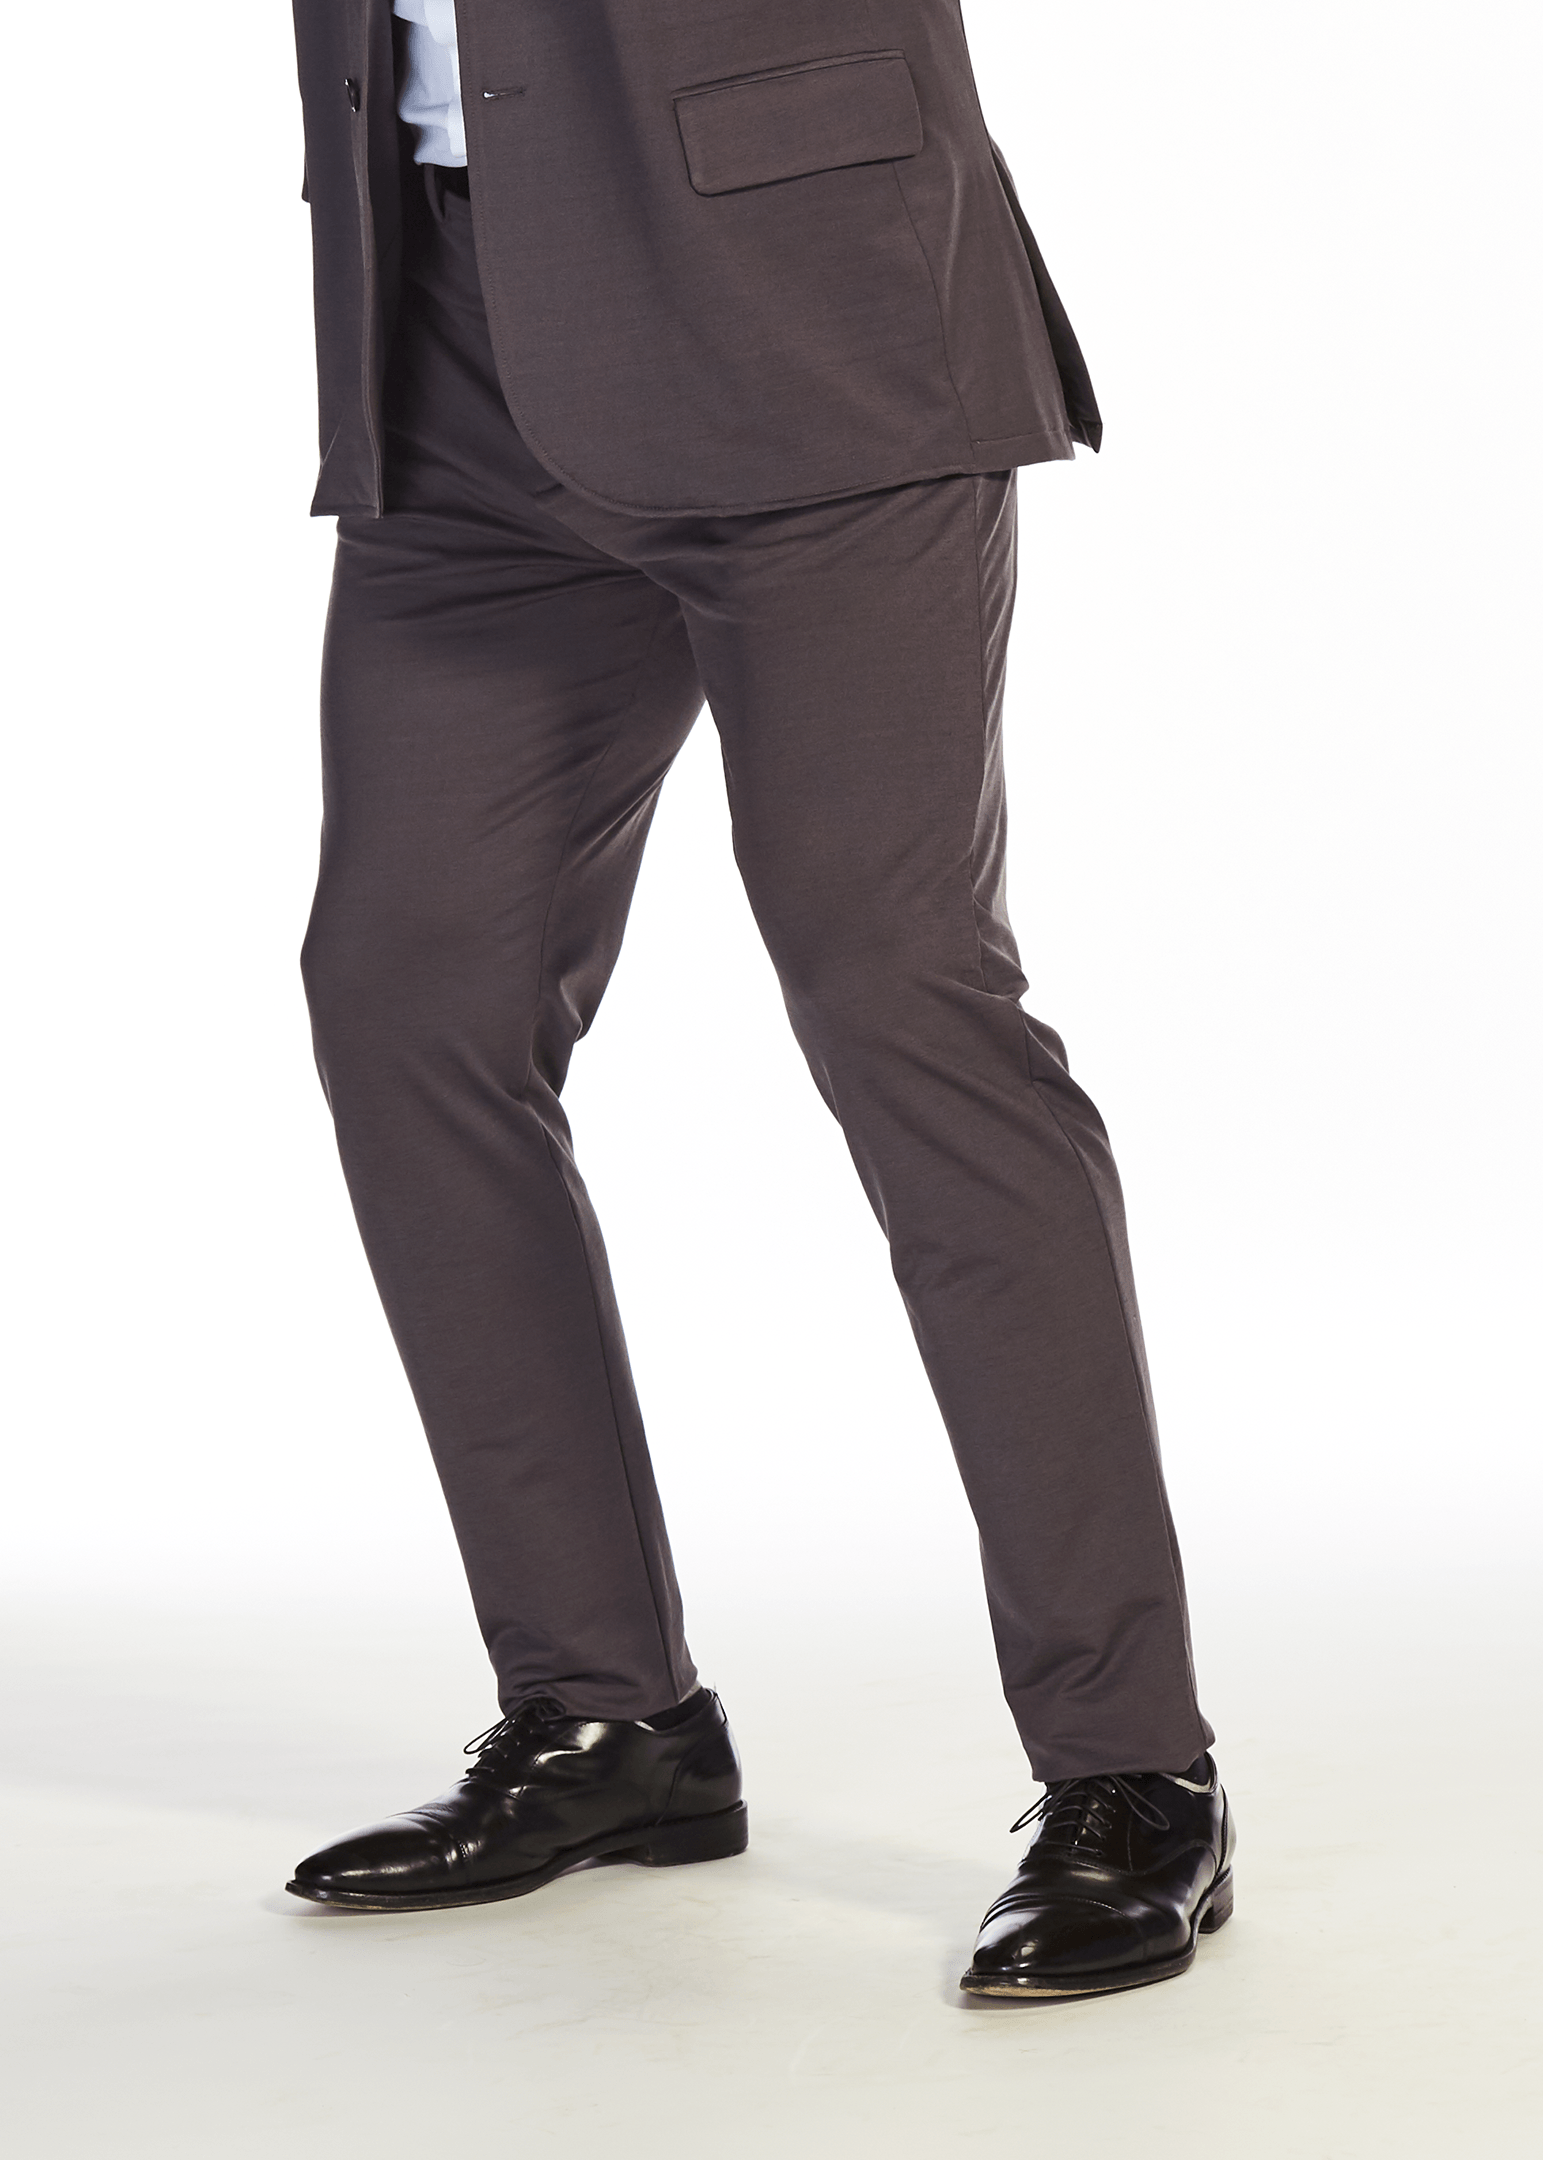 The Flat Front Stretch Suit Pants | Charcoal Grey